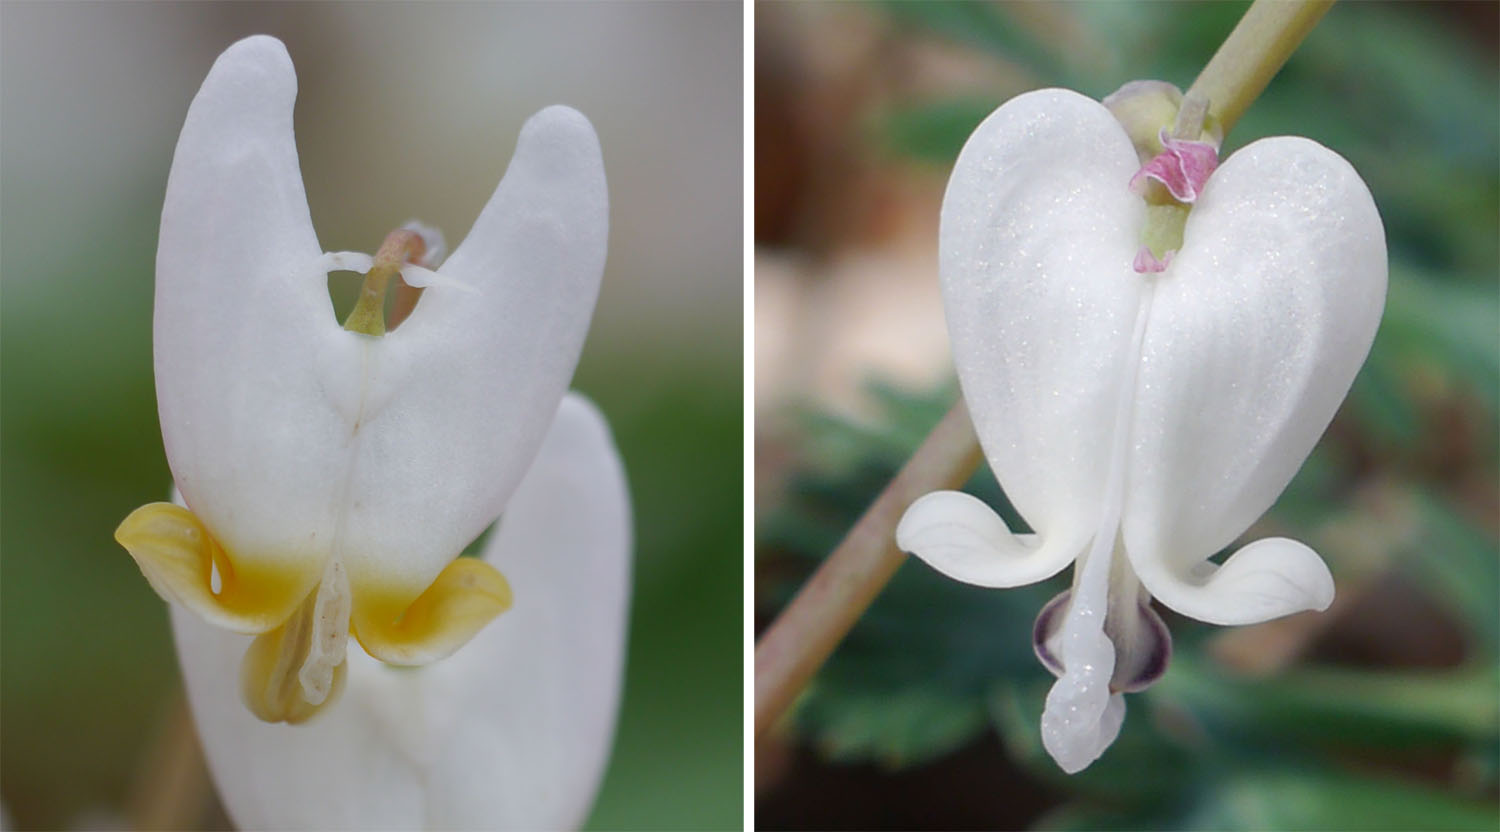 Dutchman's breeches and Squirrel corn